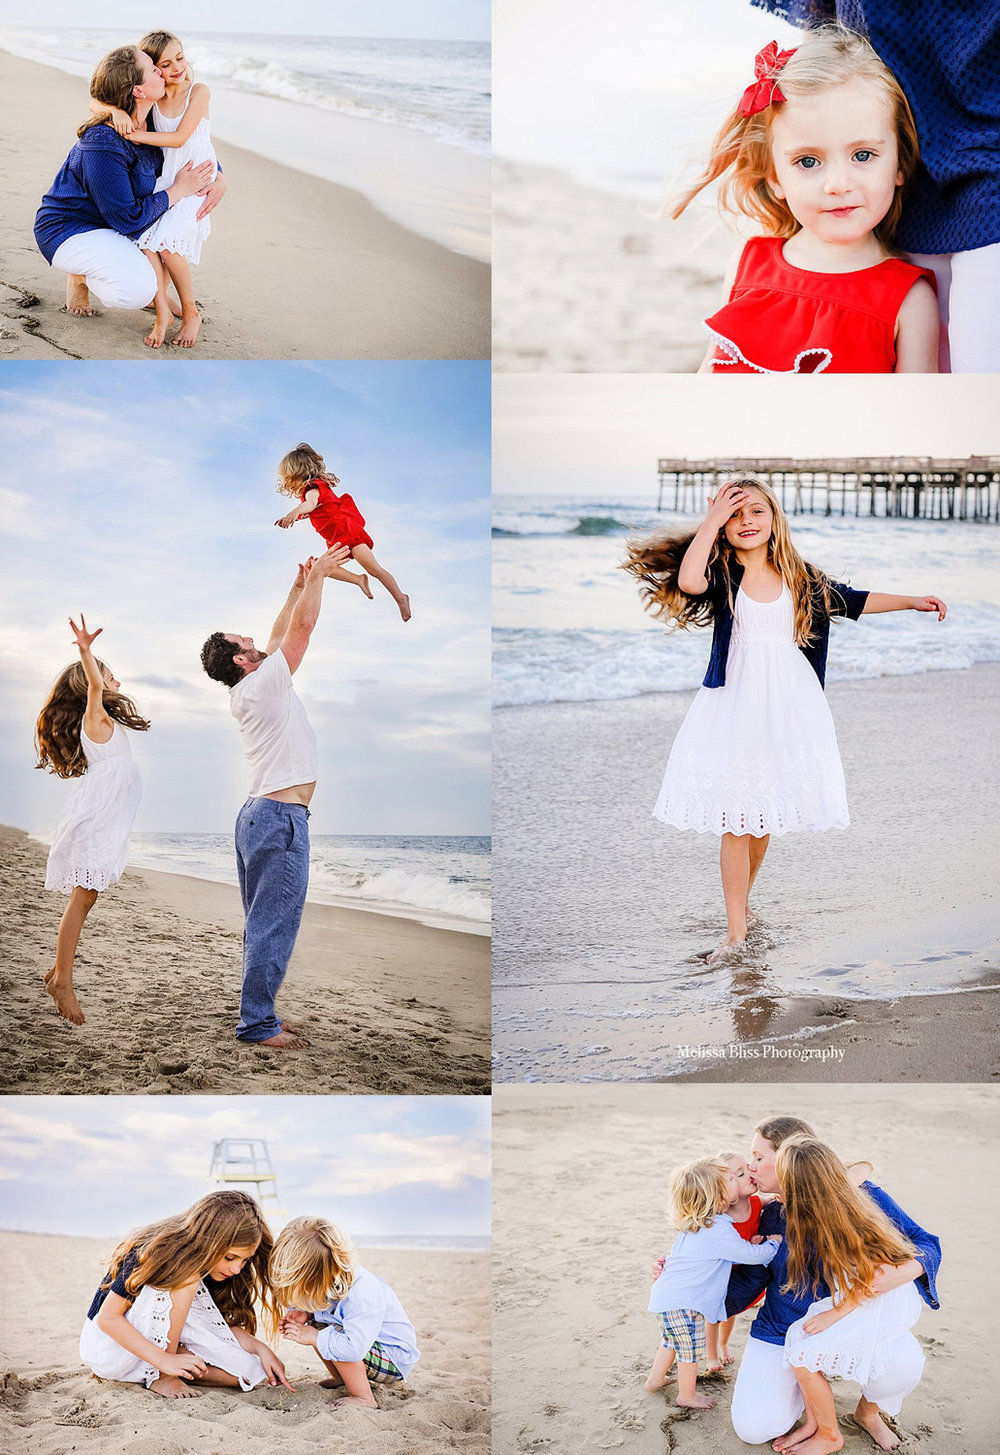 virginia-beach-family-beach-photos-melissa-bliss-photography-sandbridge-photographer.jpg